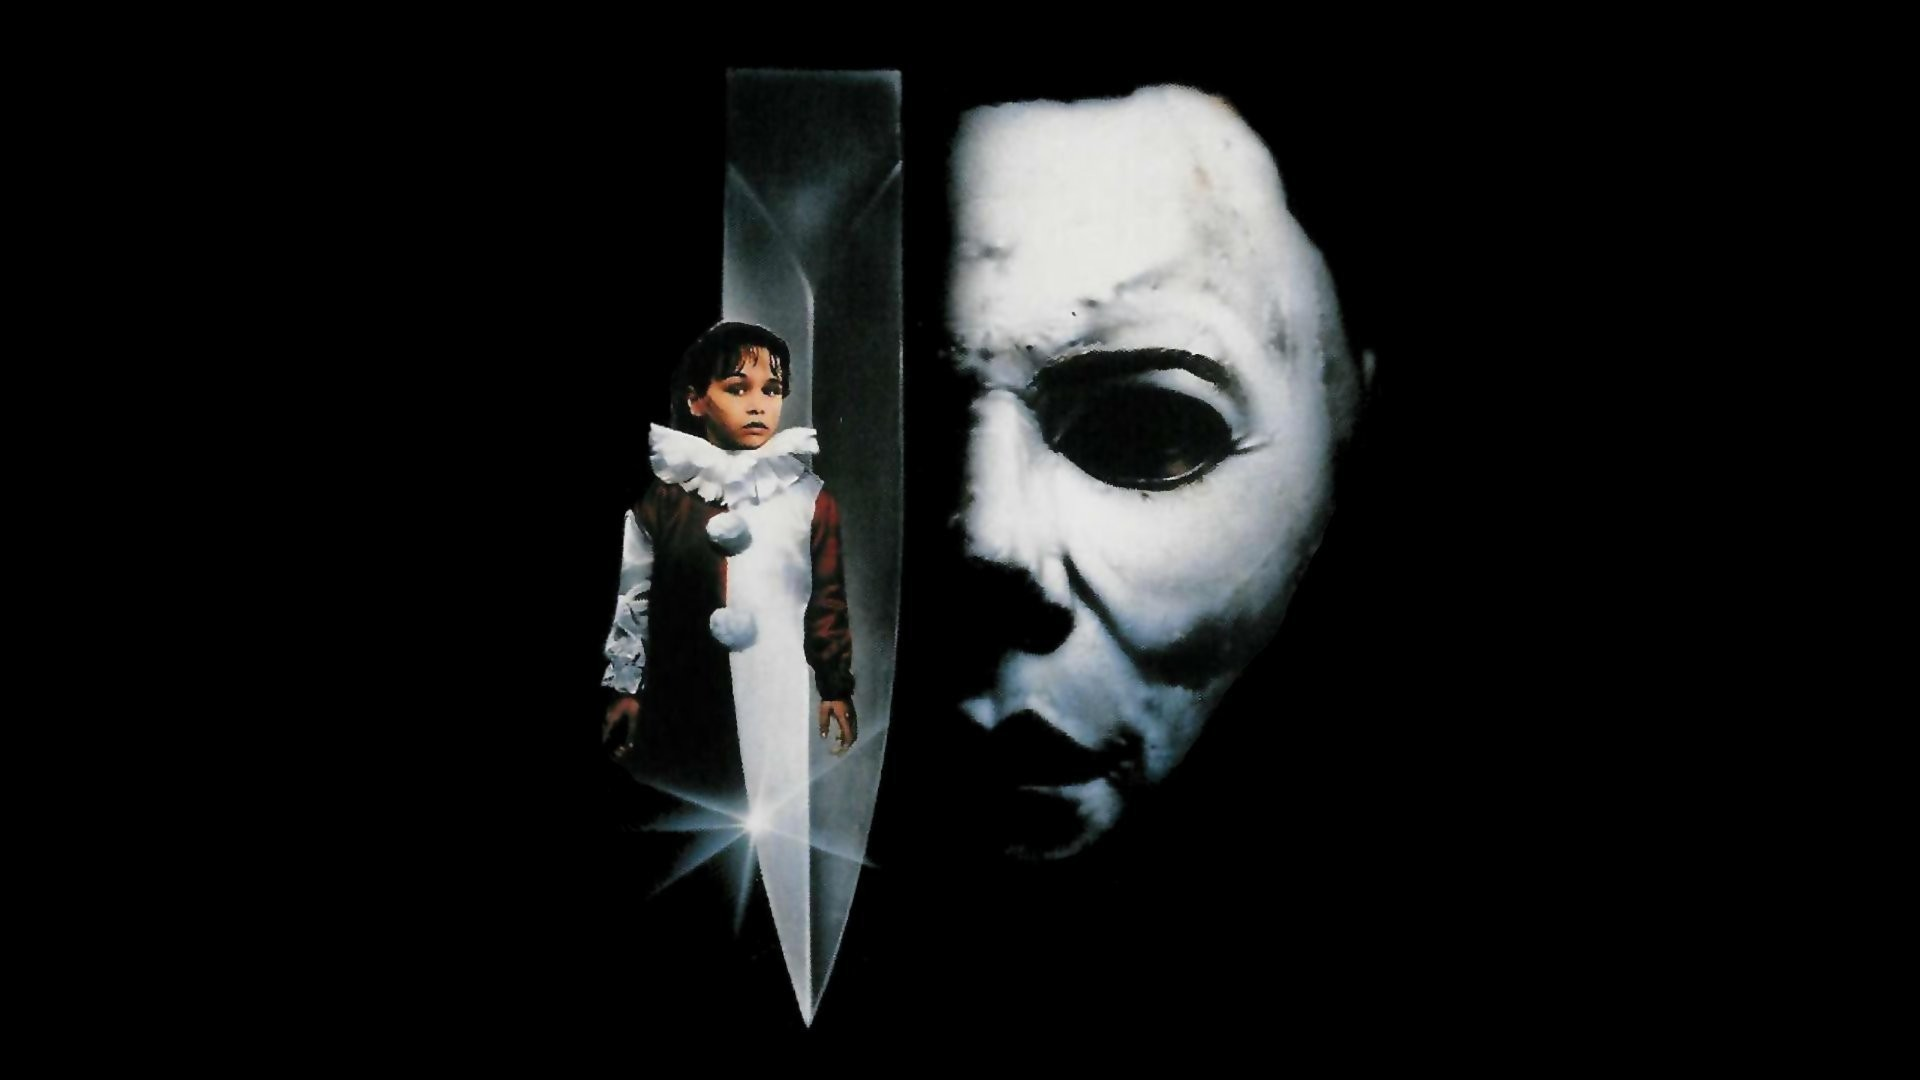 New Halloween movie gets unlikely writer and director - The Newest Halloween Movie